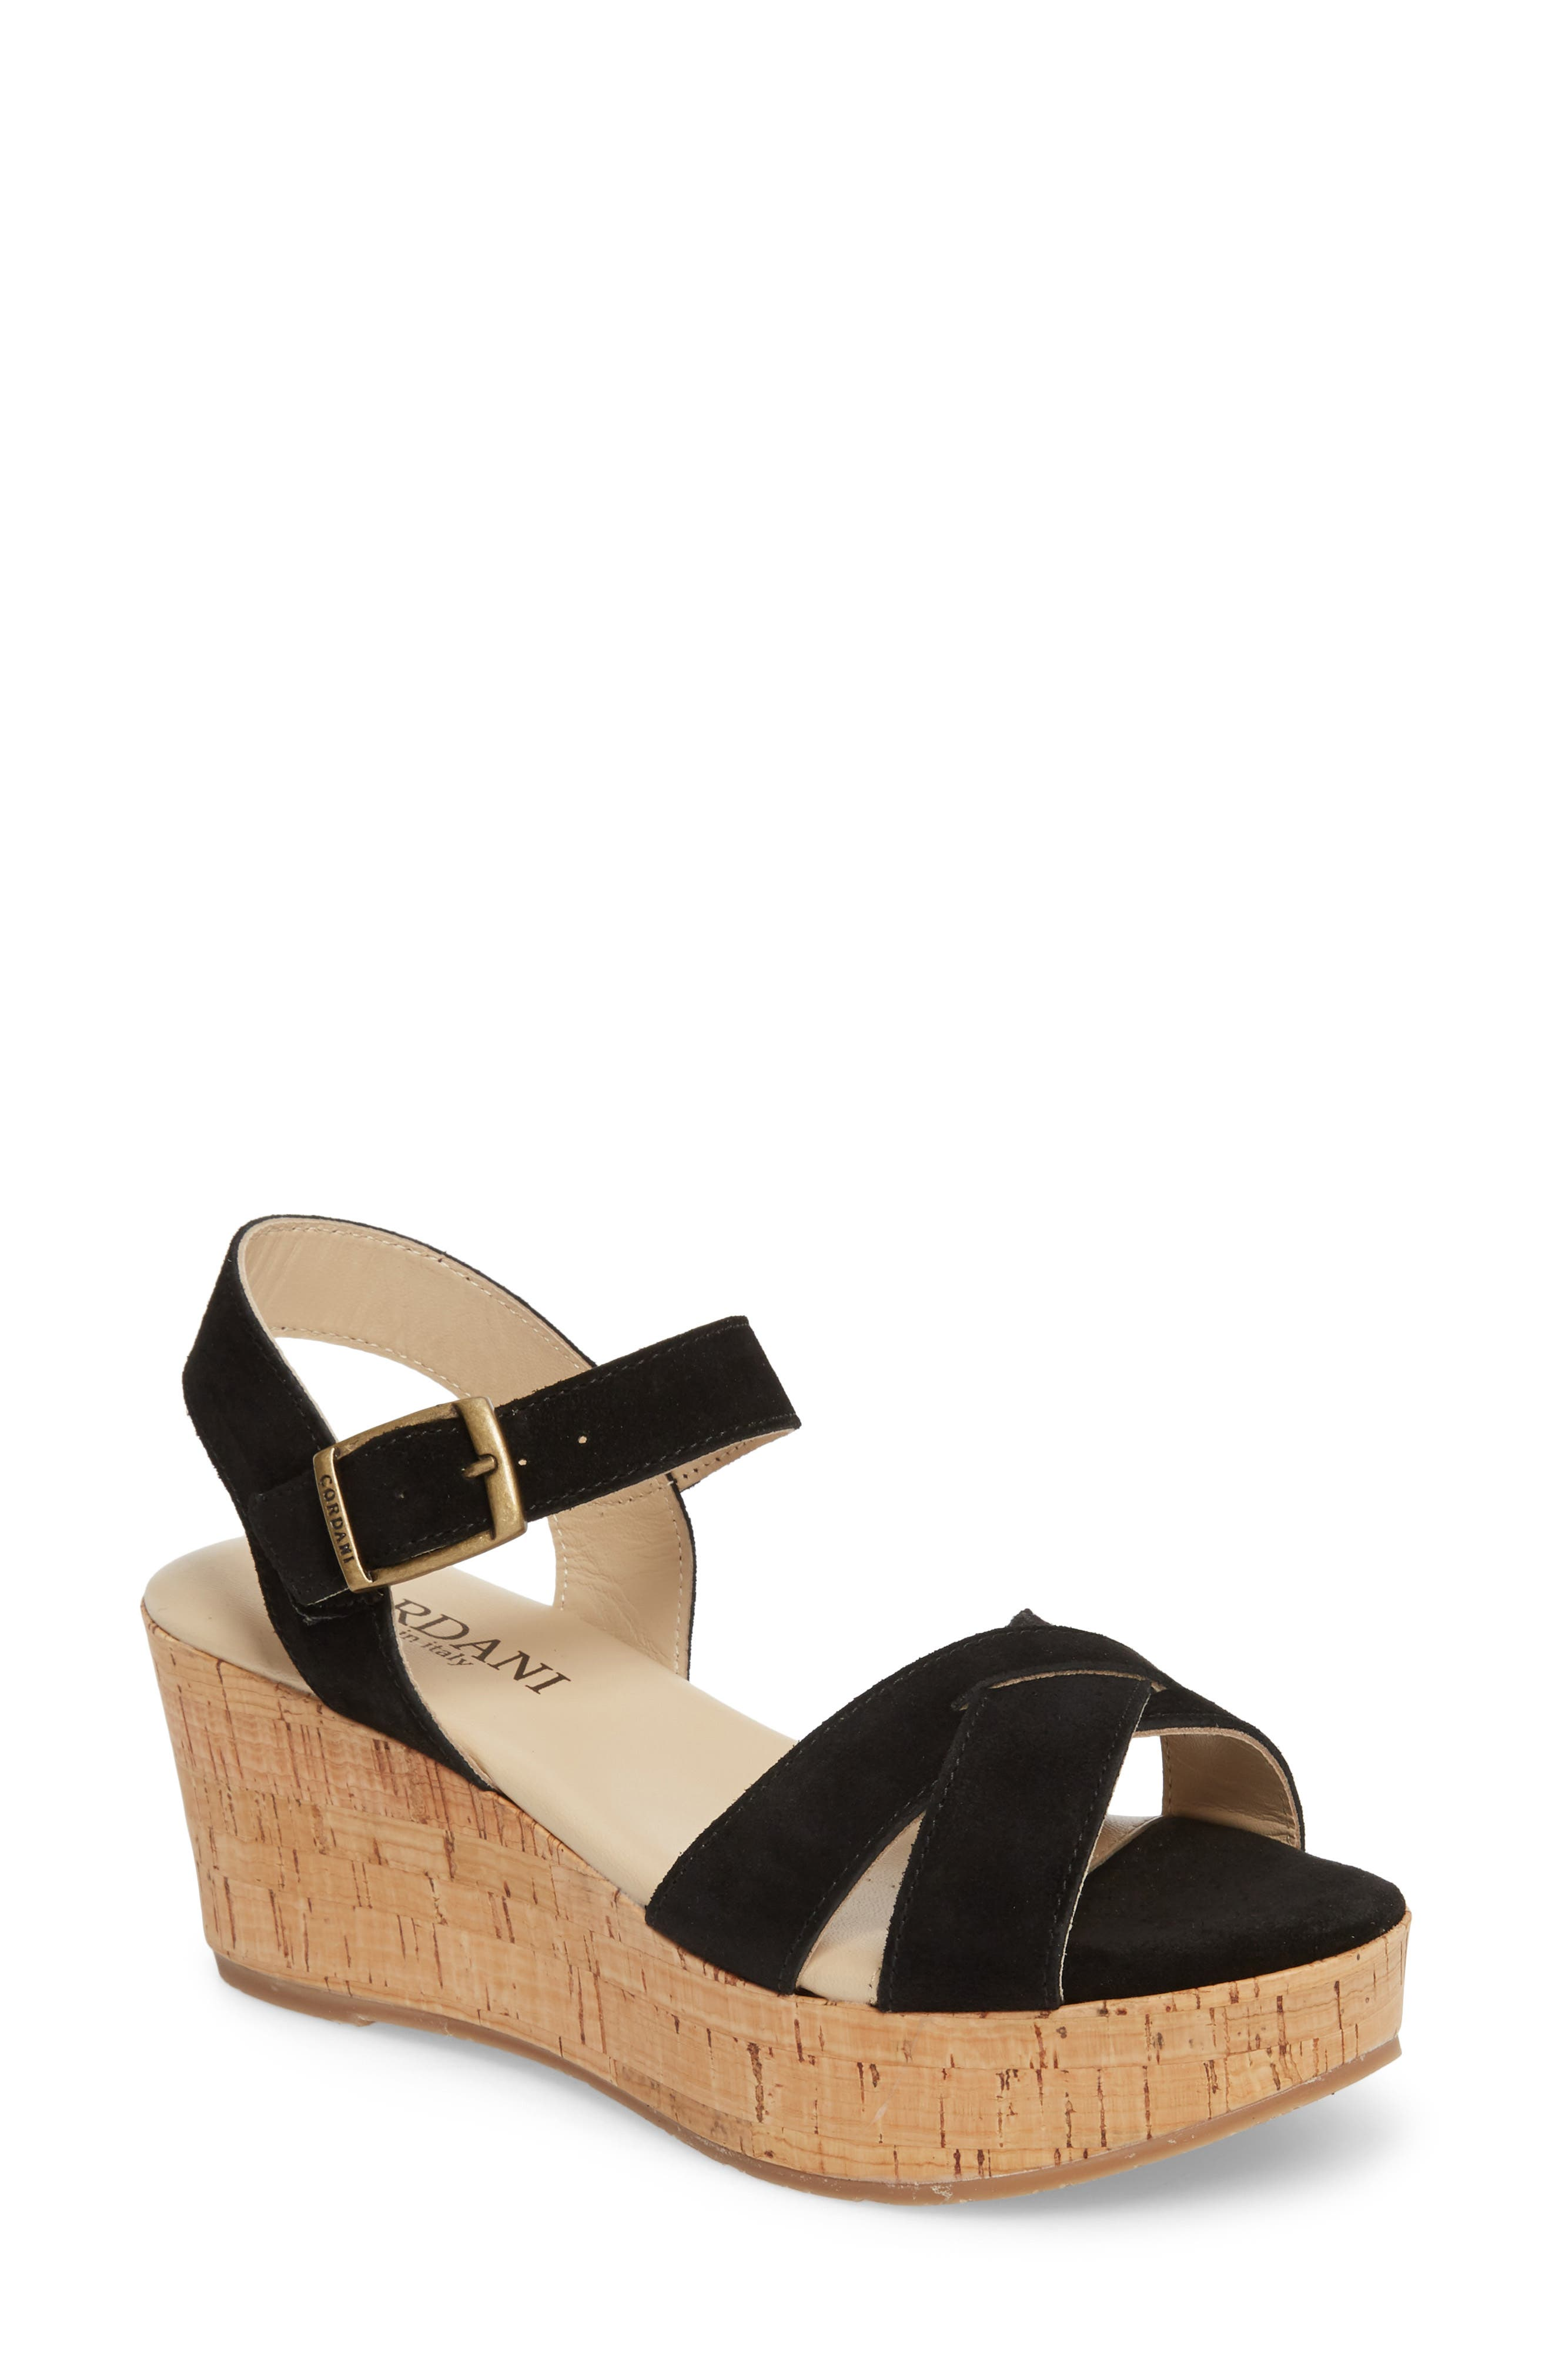 Candy Wedge Sandal,                         Main,                         color, 002